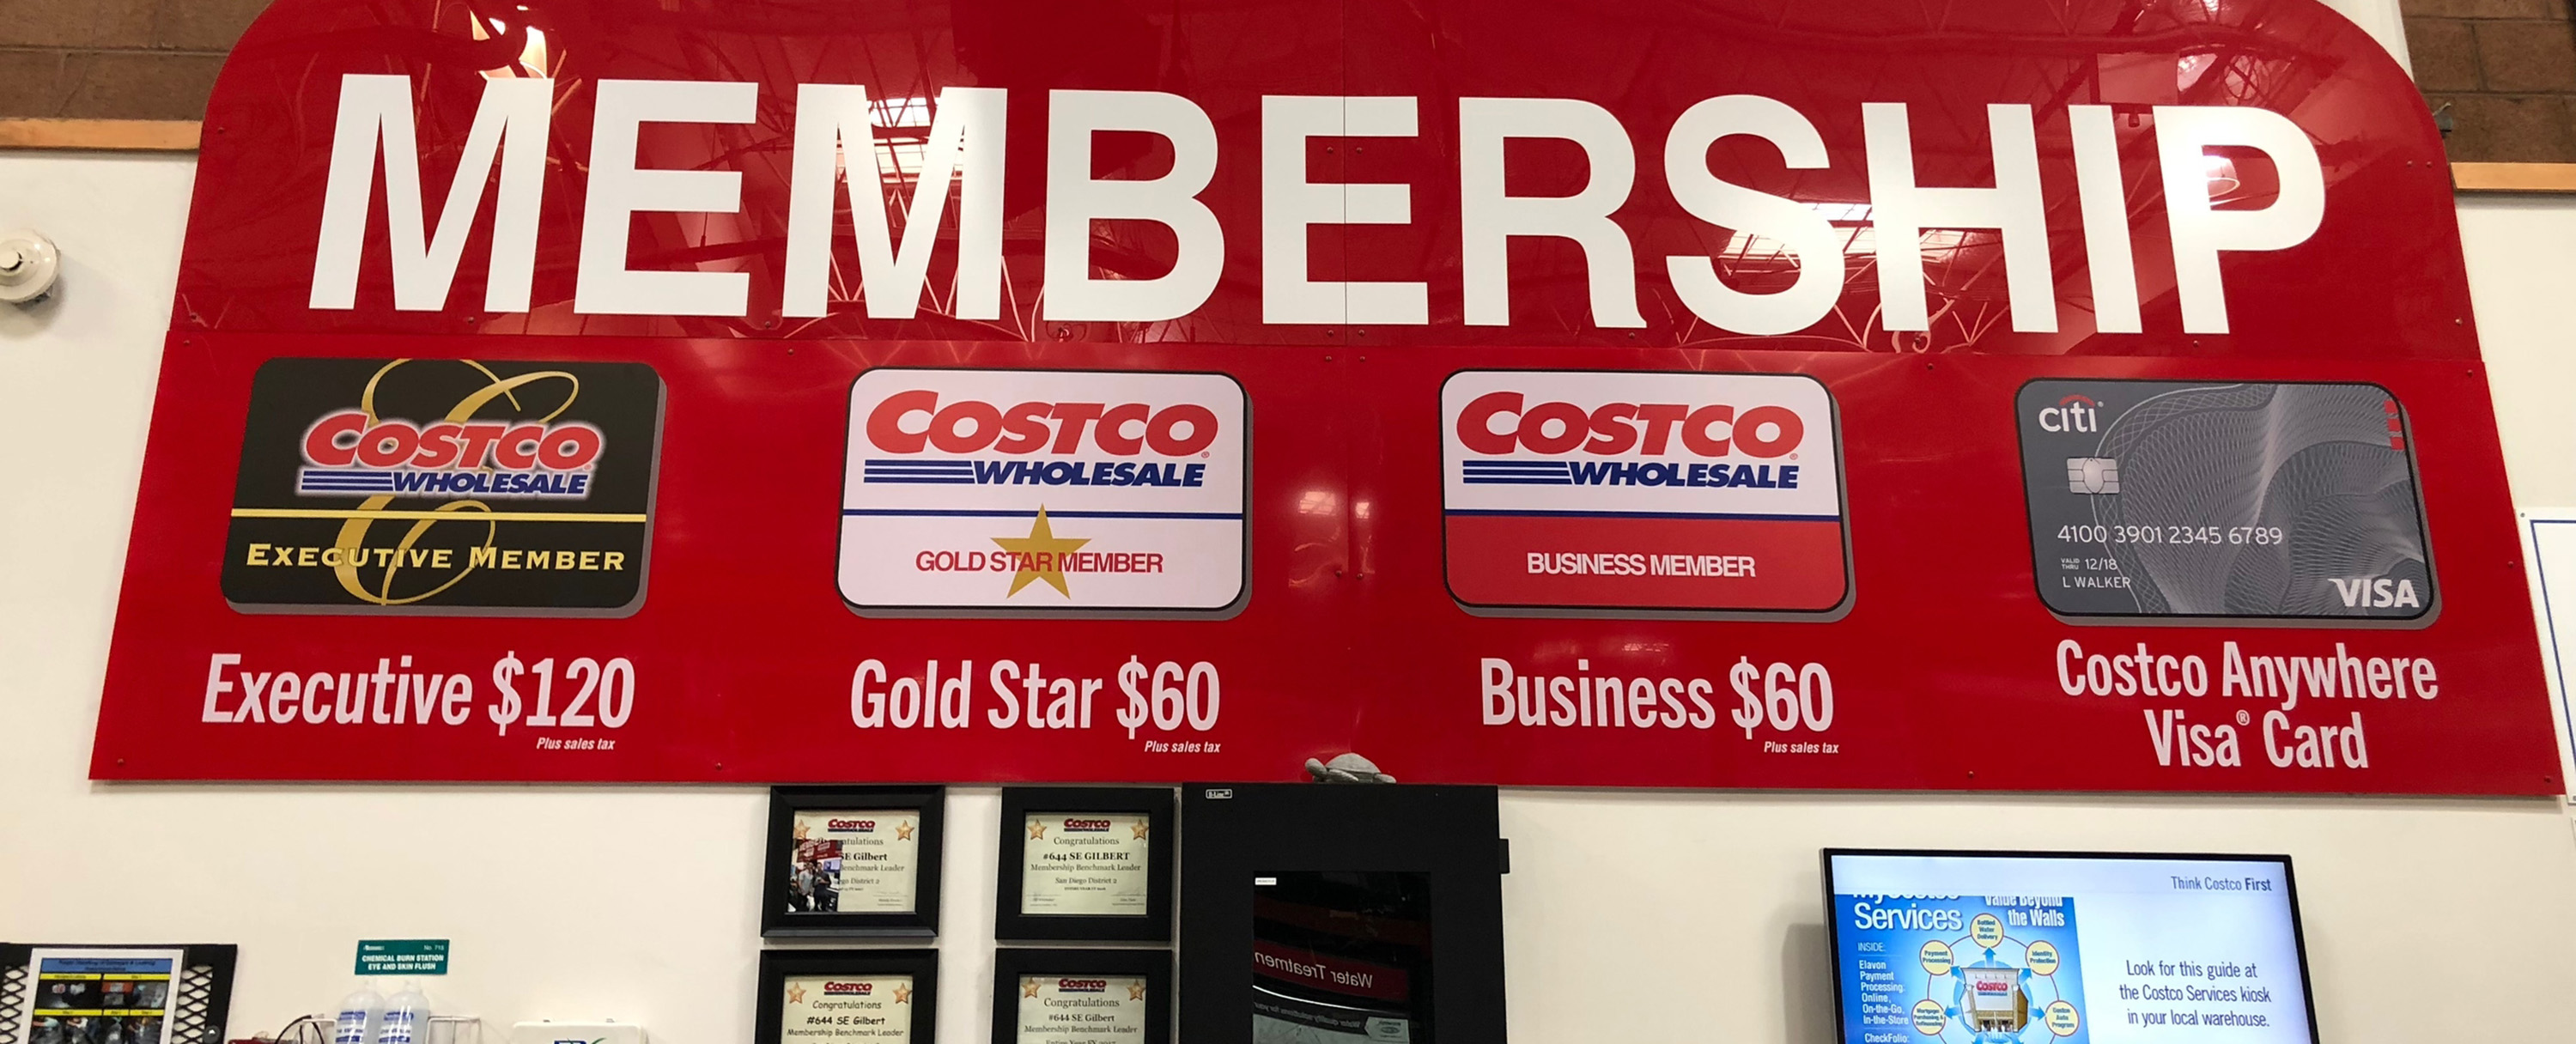 Costco store. Photo: Dreamstime